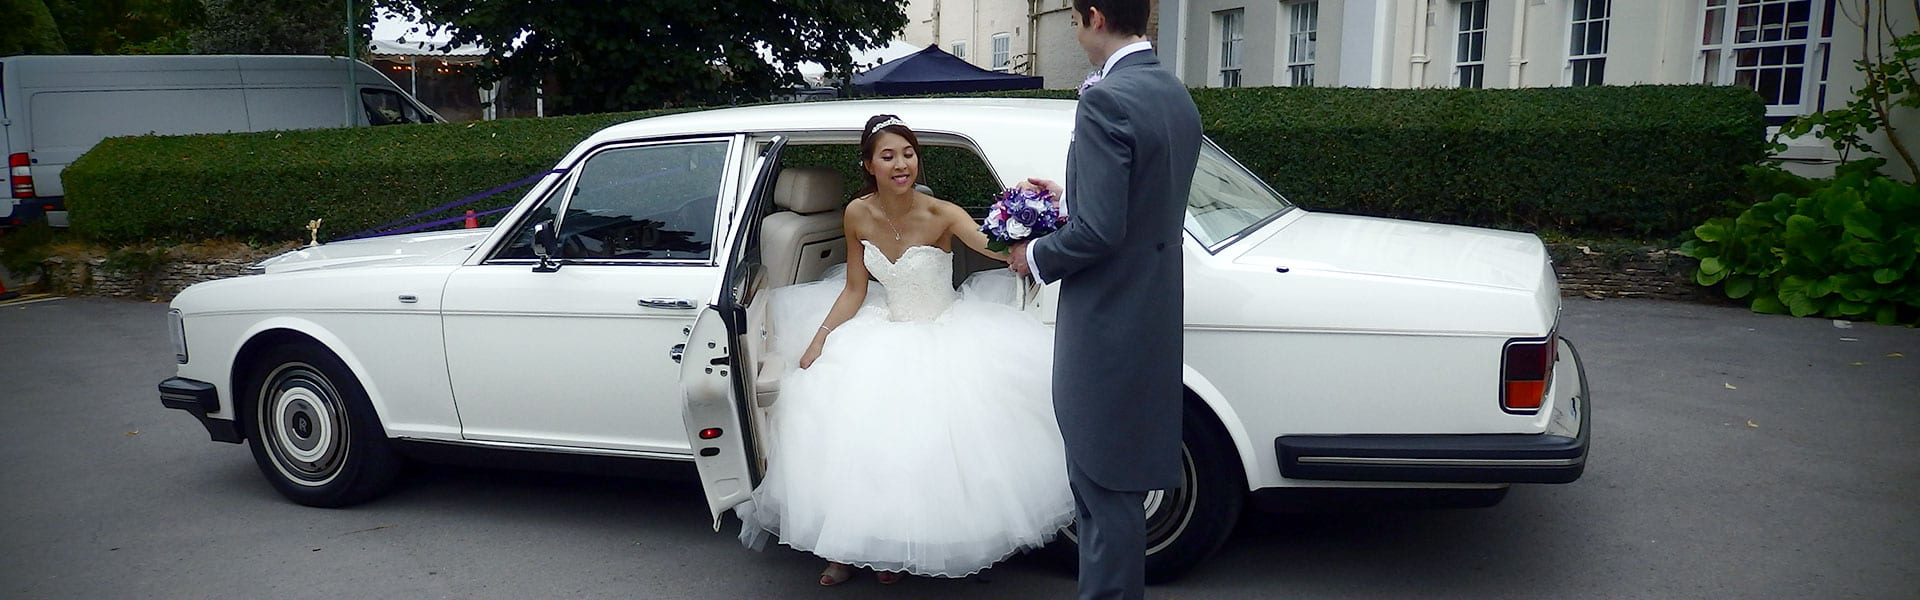 Rolls-Royce-Silver-Spur-Wedding-Car-hero-5